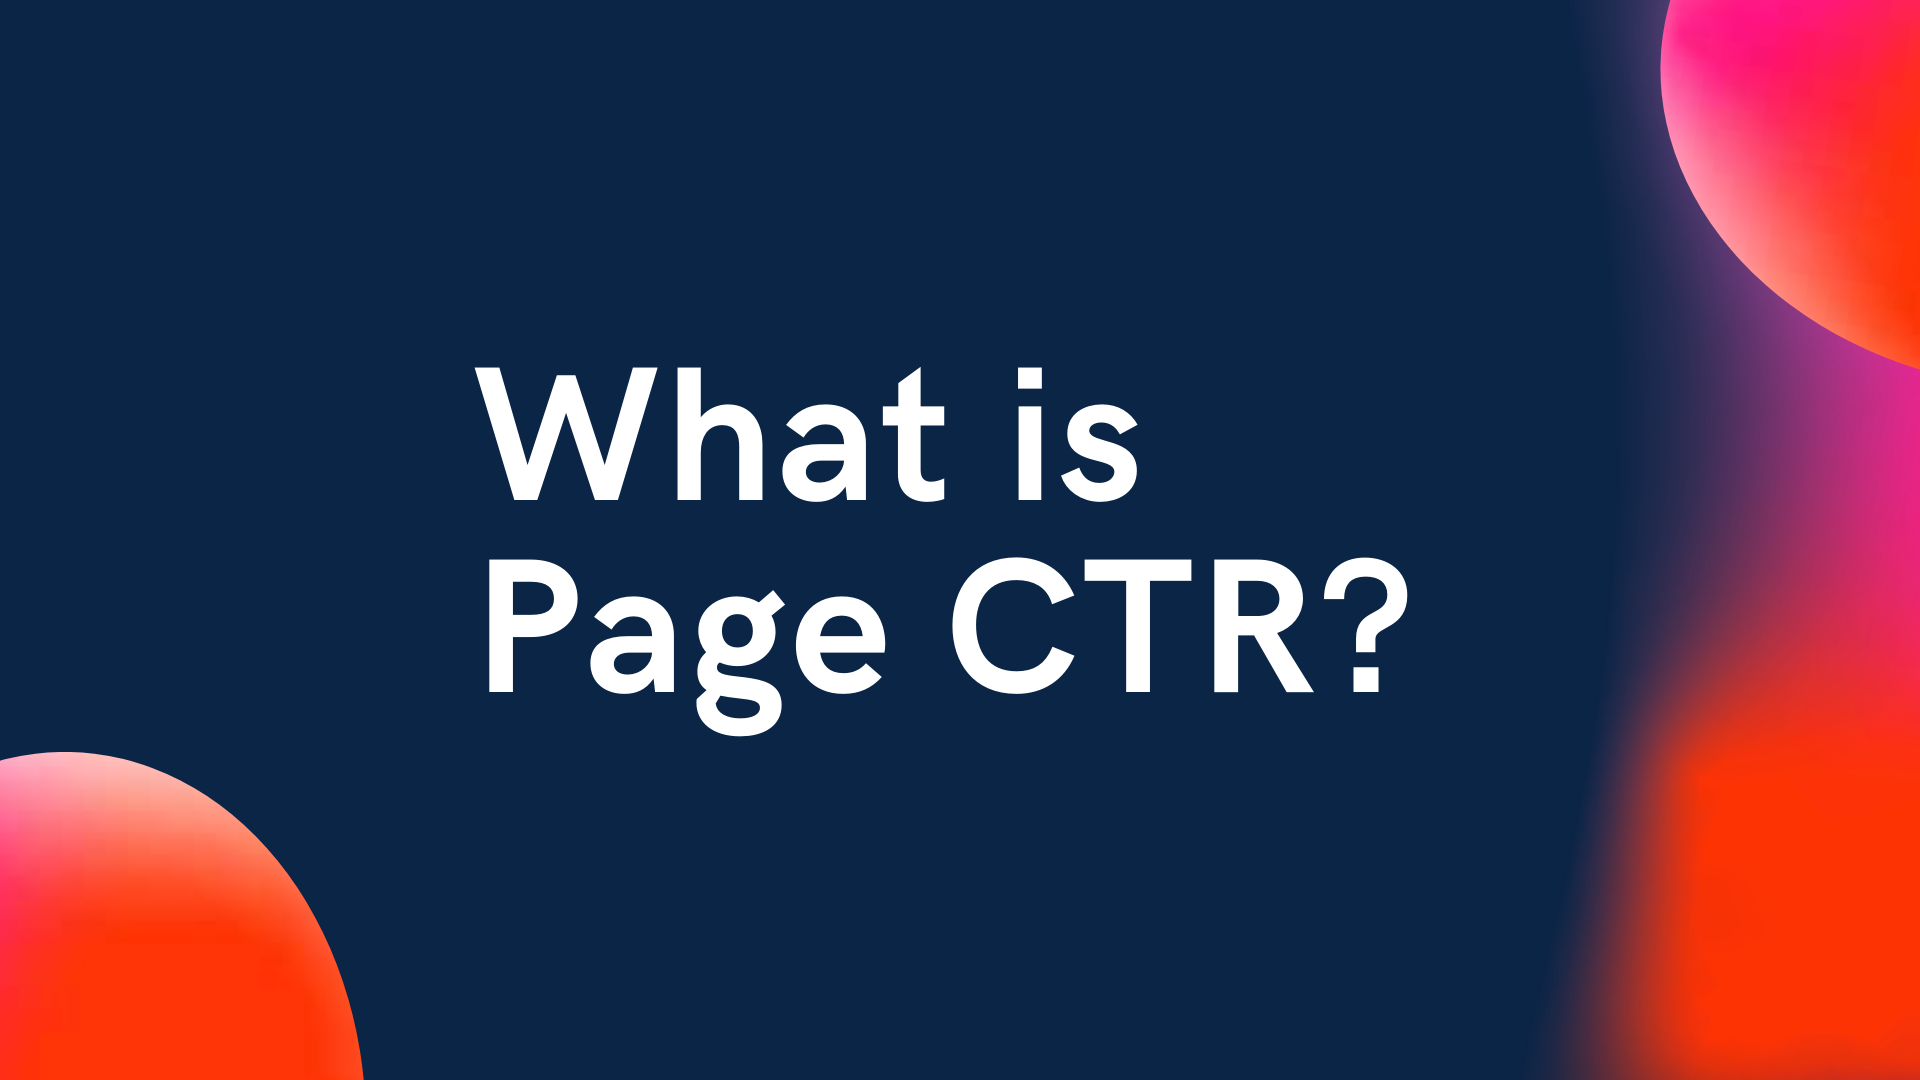 Page CTR